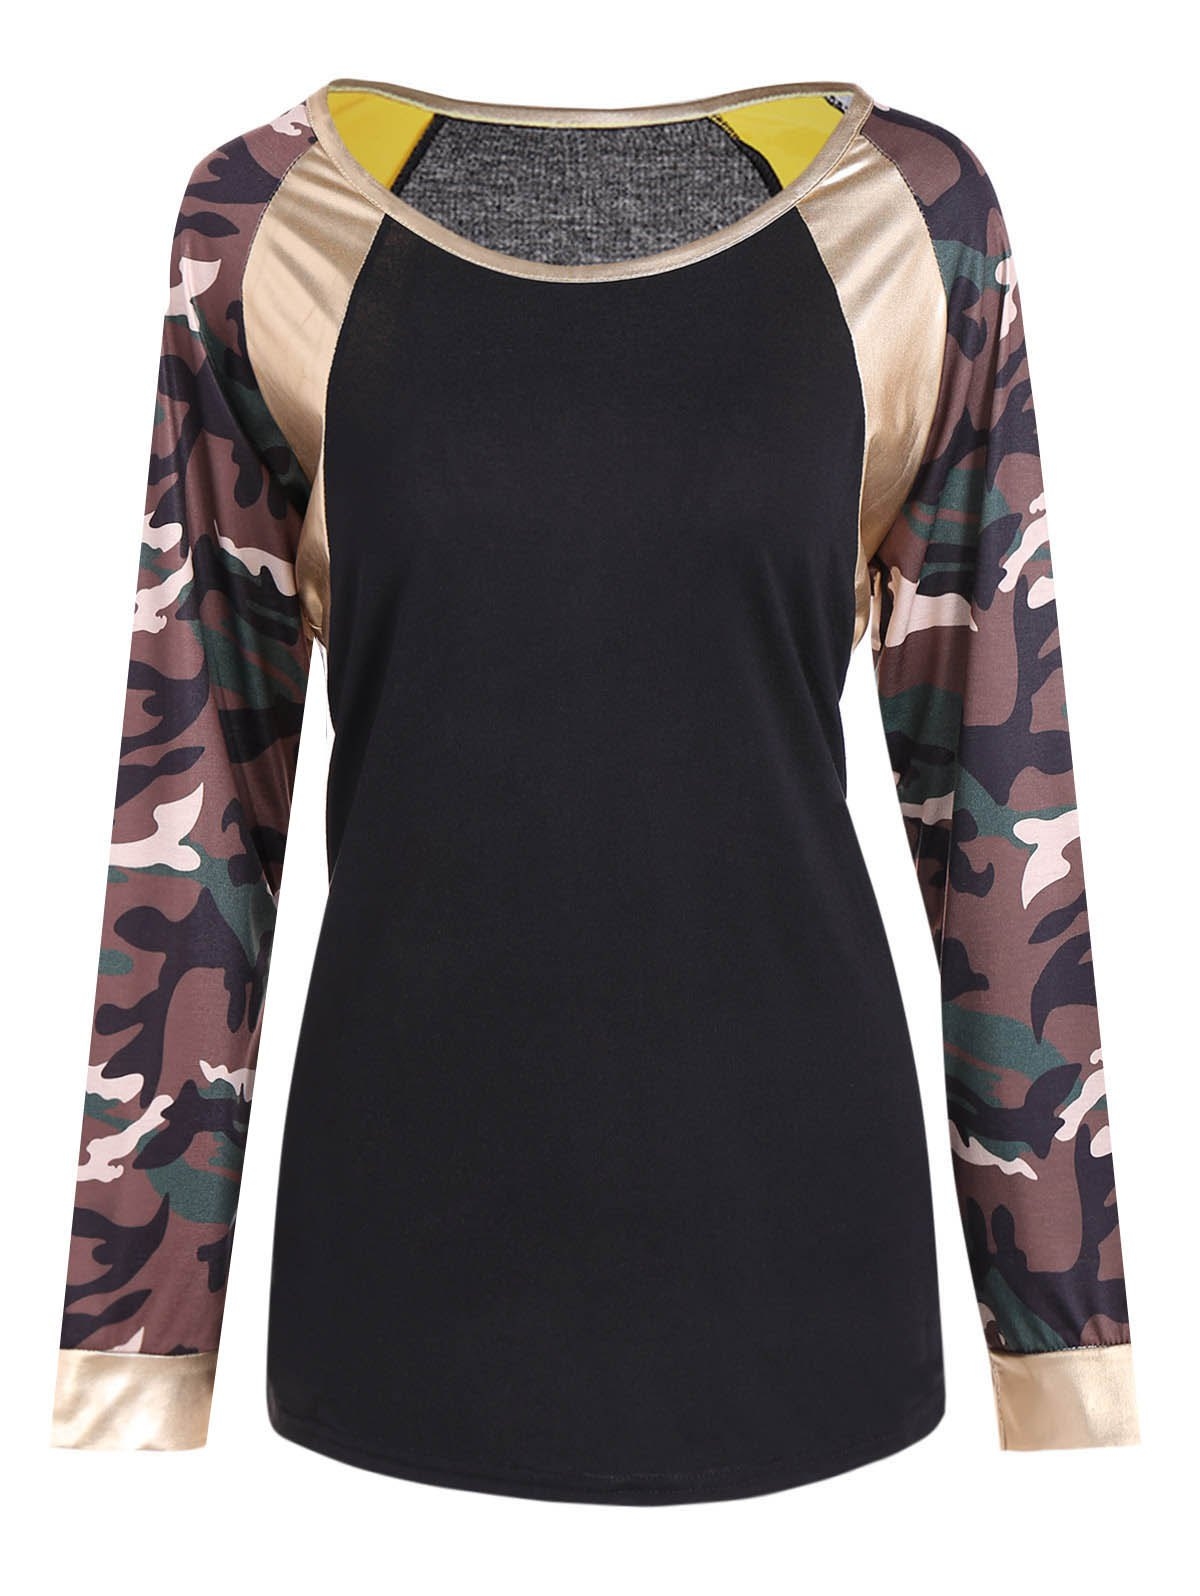 67 Off 2018 Camo Print Faux Leather Panel T Shirt Rosegal